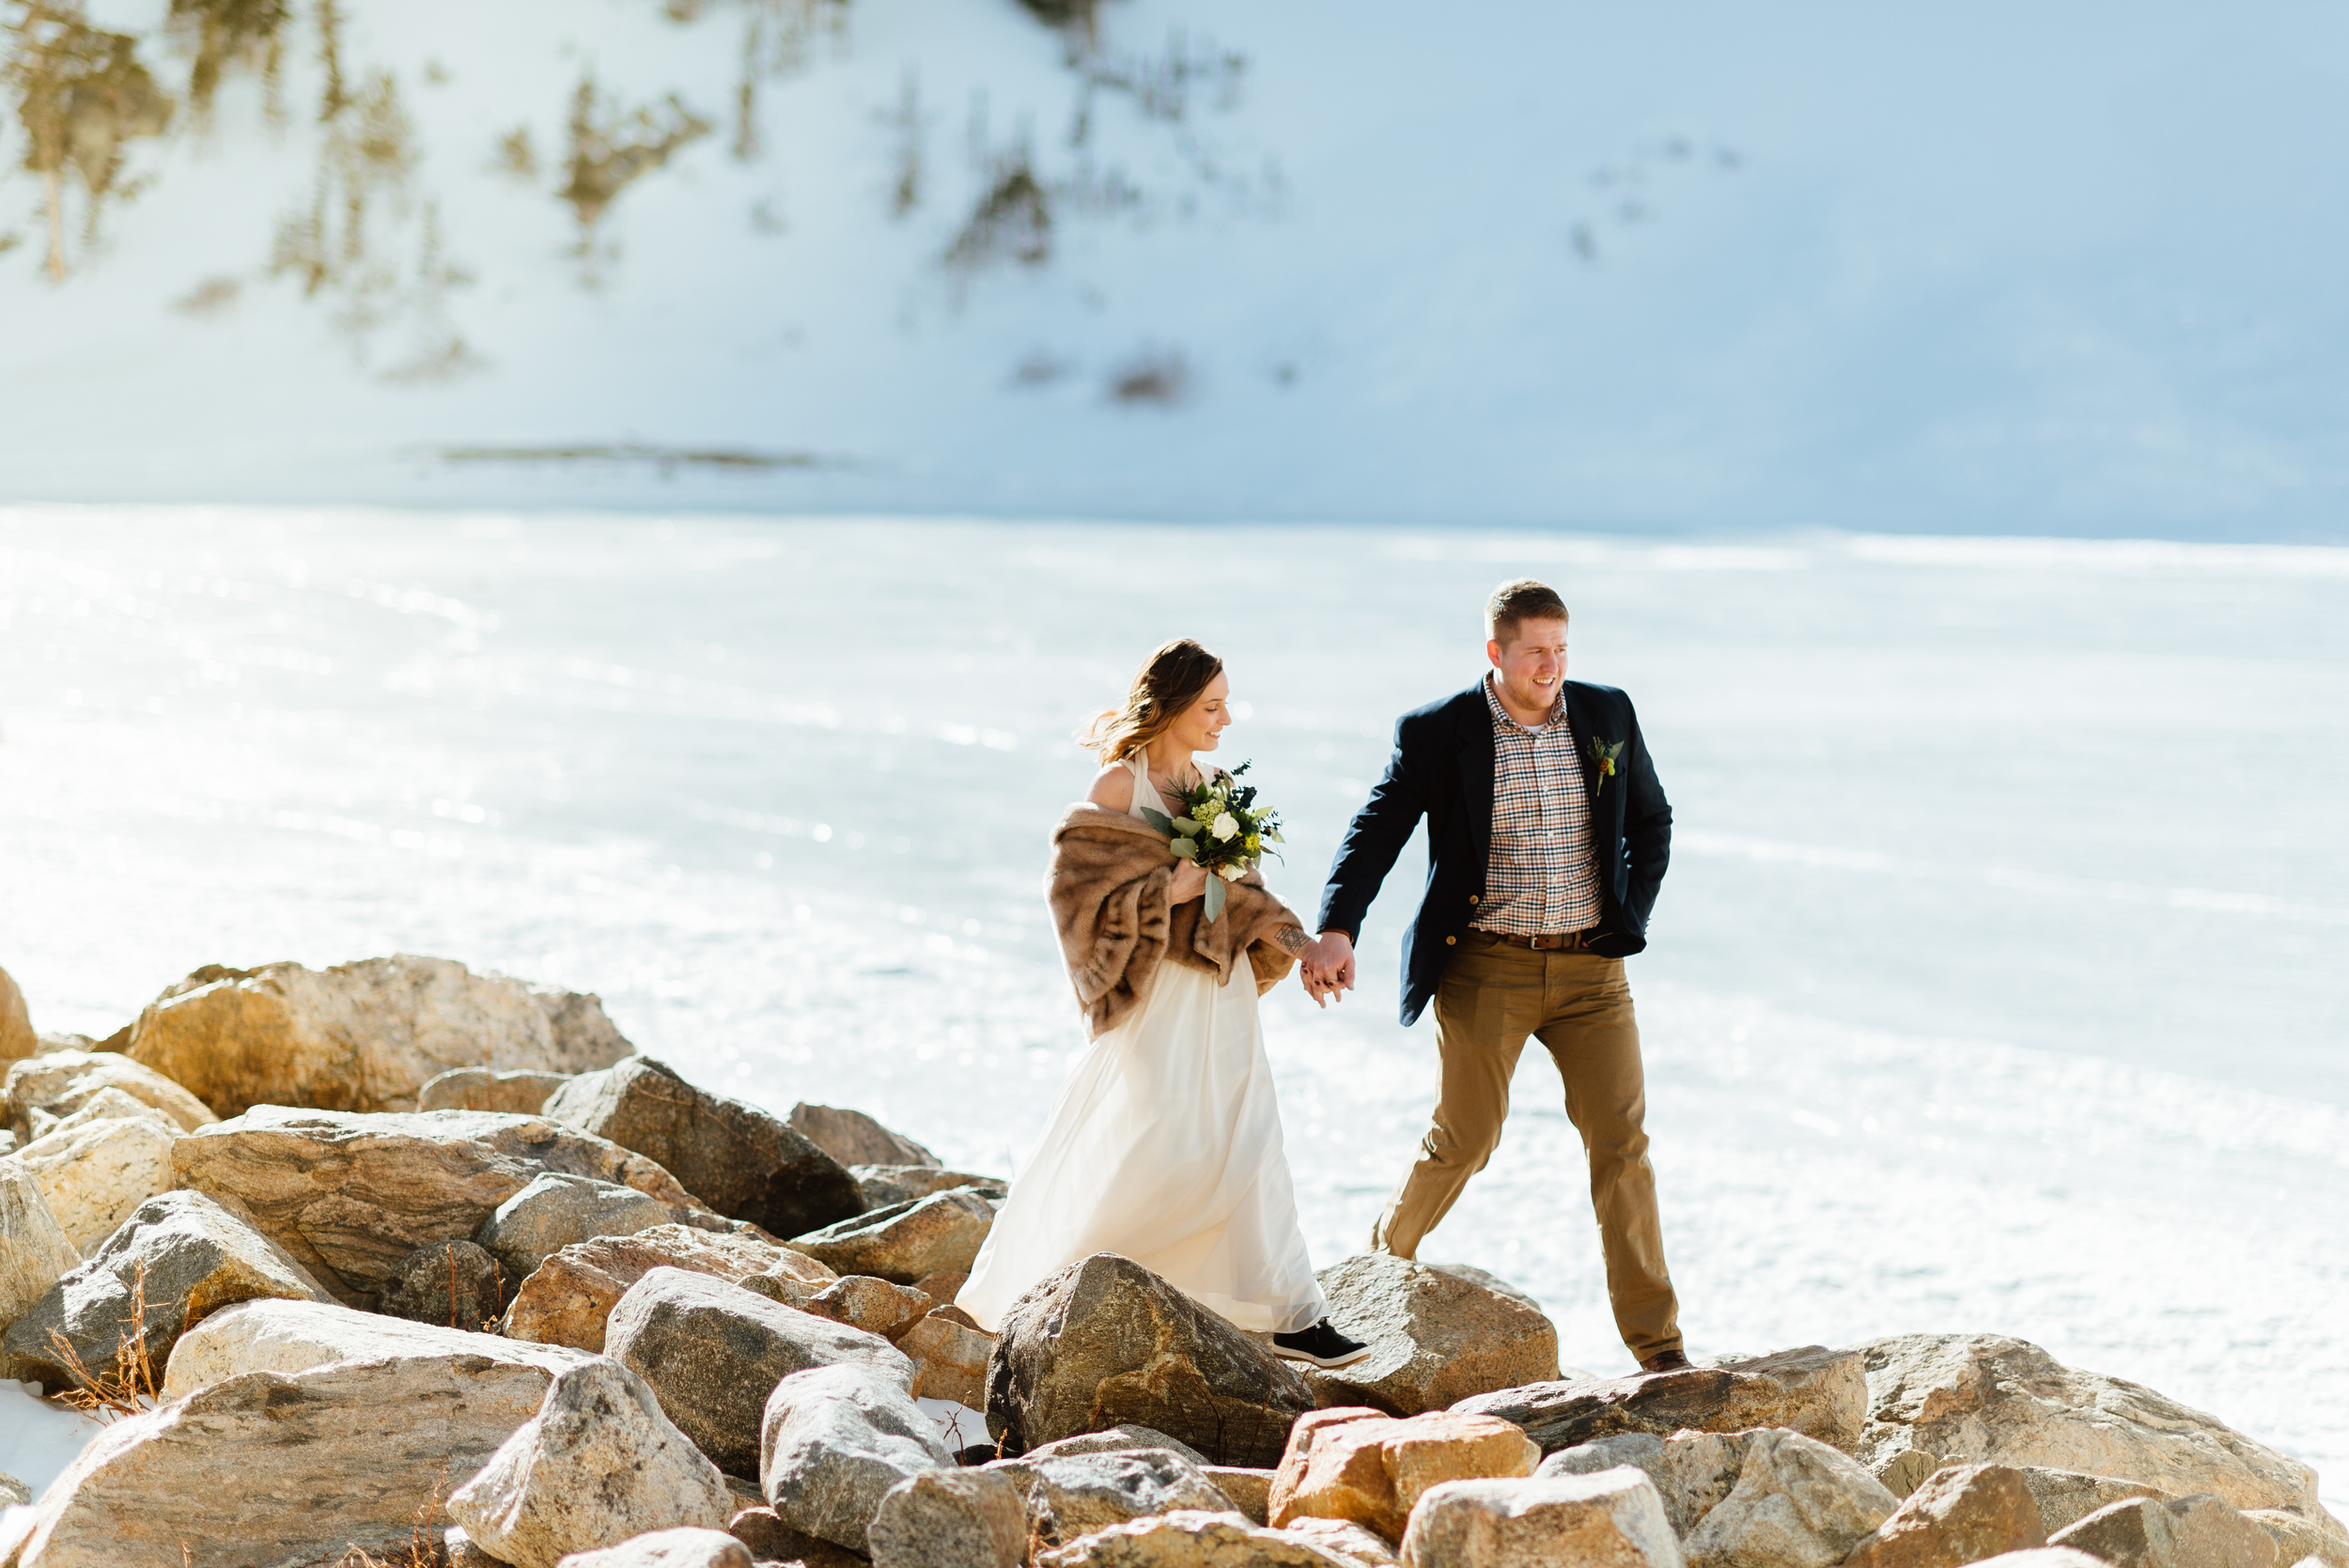 What an absolutely magical winter elopement at Saint Mary's Glacier in Idaho Springs, Colorado!I want to get married in a place that looks so intimate and romantic like the gorgeous Norwegian fjords!|Romantic elopement photos by intimate, mountain wedding photographer, Maddie Mae.